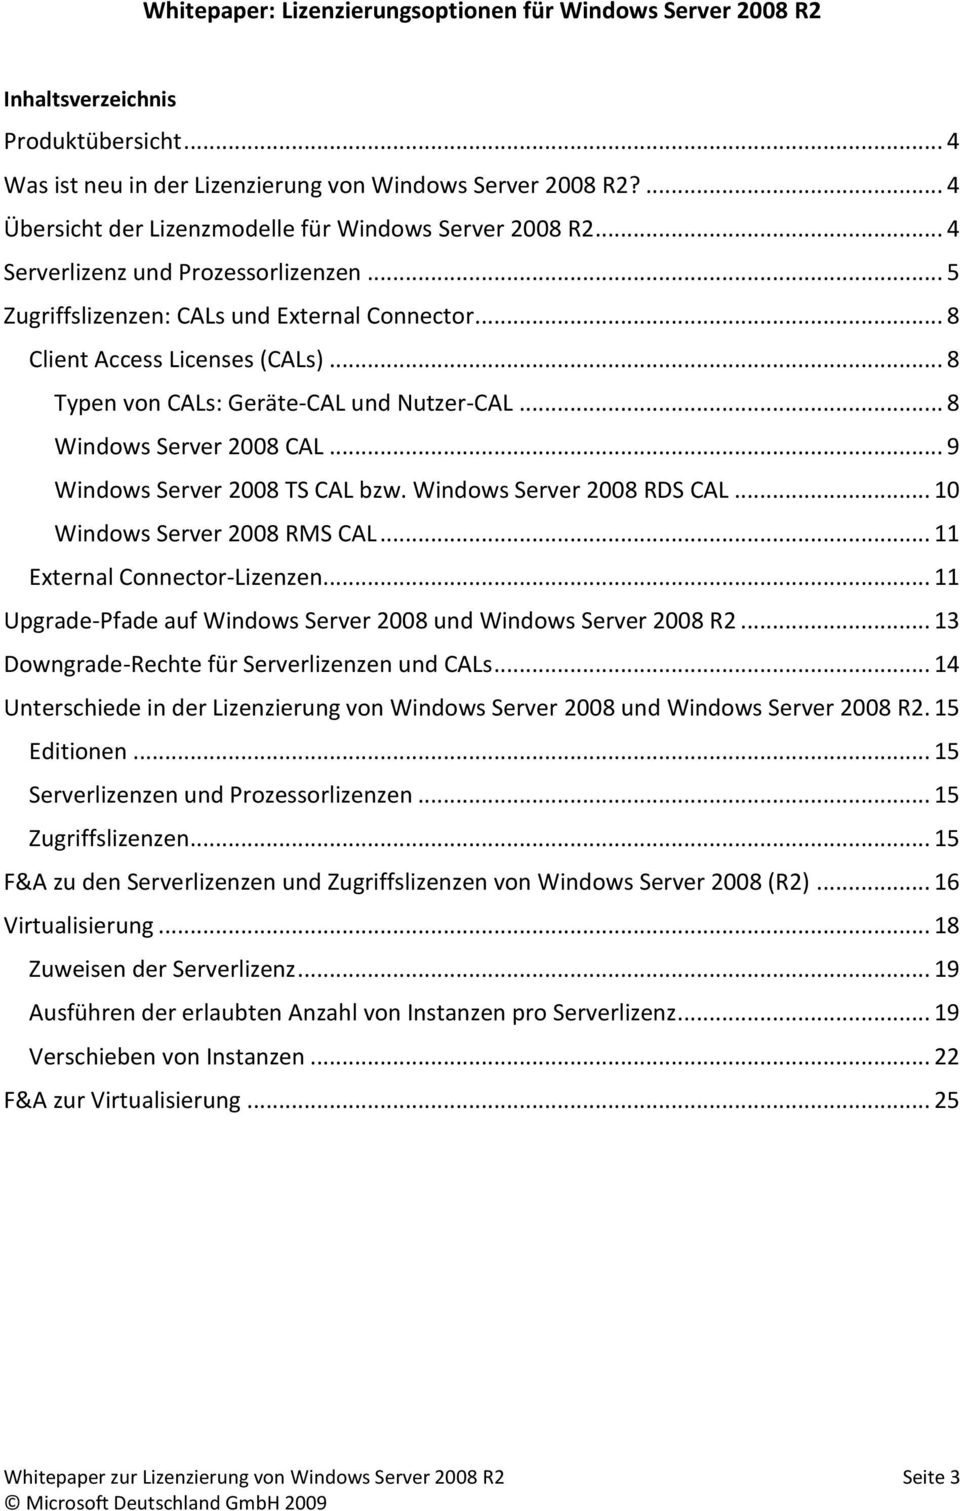 .. 8 Typen von CALs: Geräte-CAL und Nutzer-CAL... 8 Windows Server 2008 CAL... 9 Windows Server 2008 TS CAL bzw. Windows Server 2008 RDS CAL... 10 Windows Server 2008 RMS CAL.